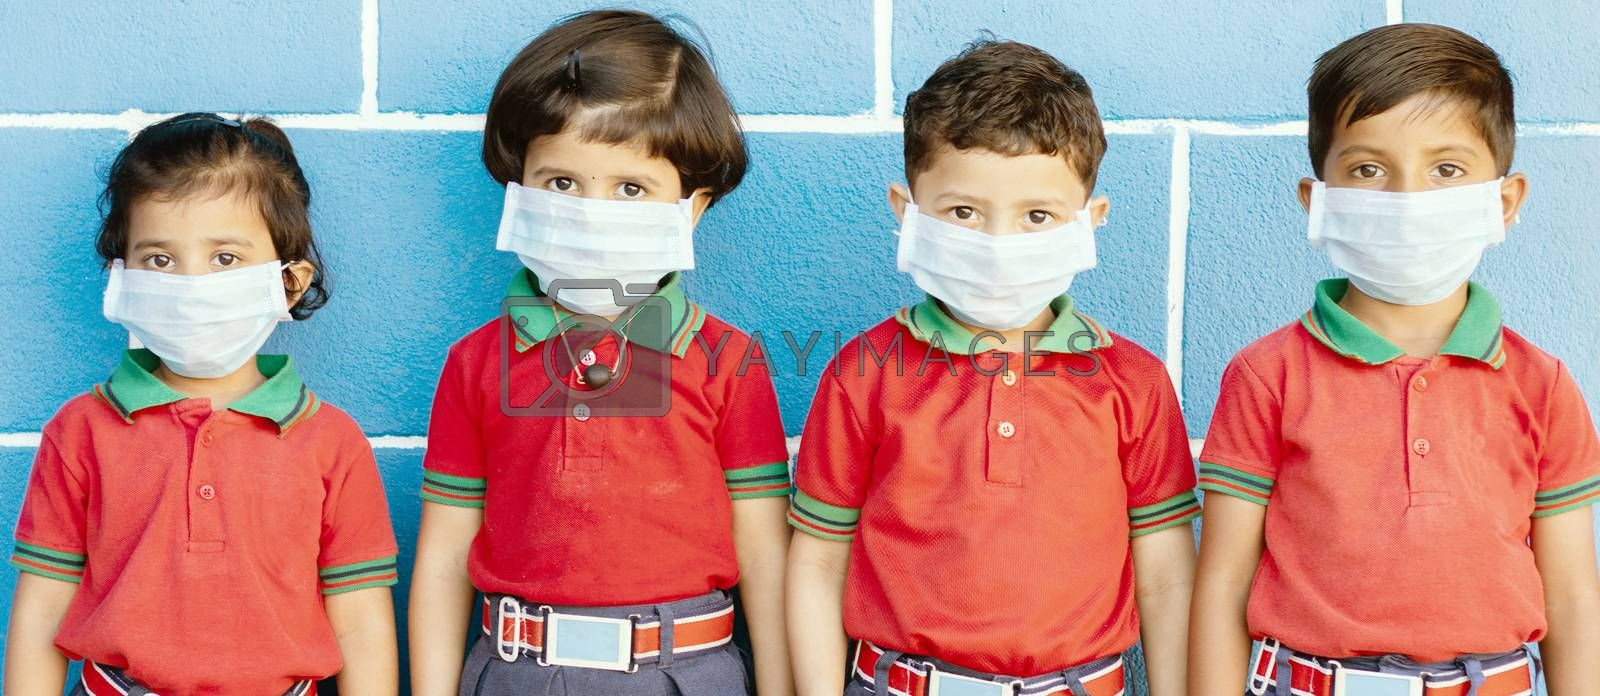 School preteen kids with protection face mask against new coronavirus, covid -19, nCov 2019 or sars cov 2 virus at school - children wore medical mask due to coronavirus outbreak. by lakshmiprasad